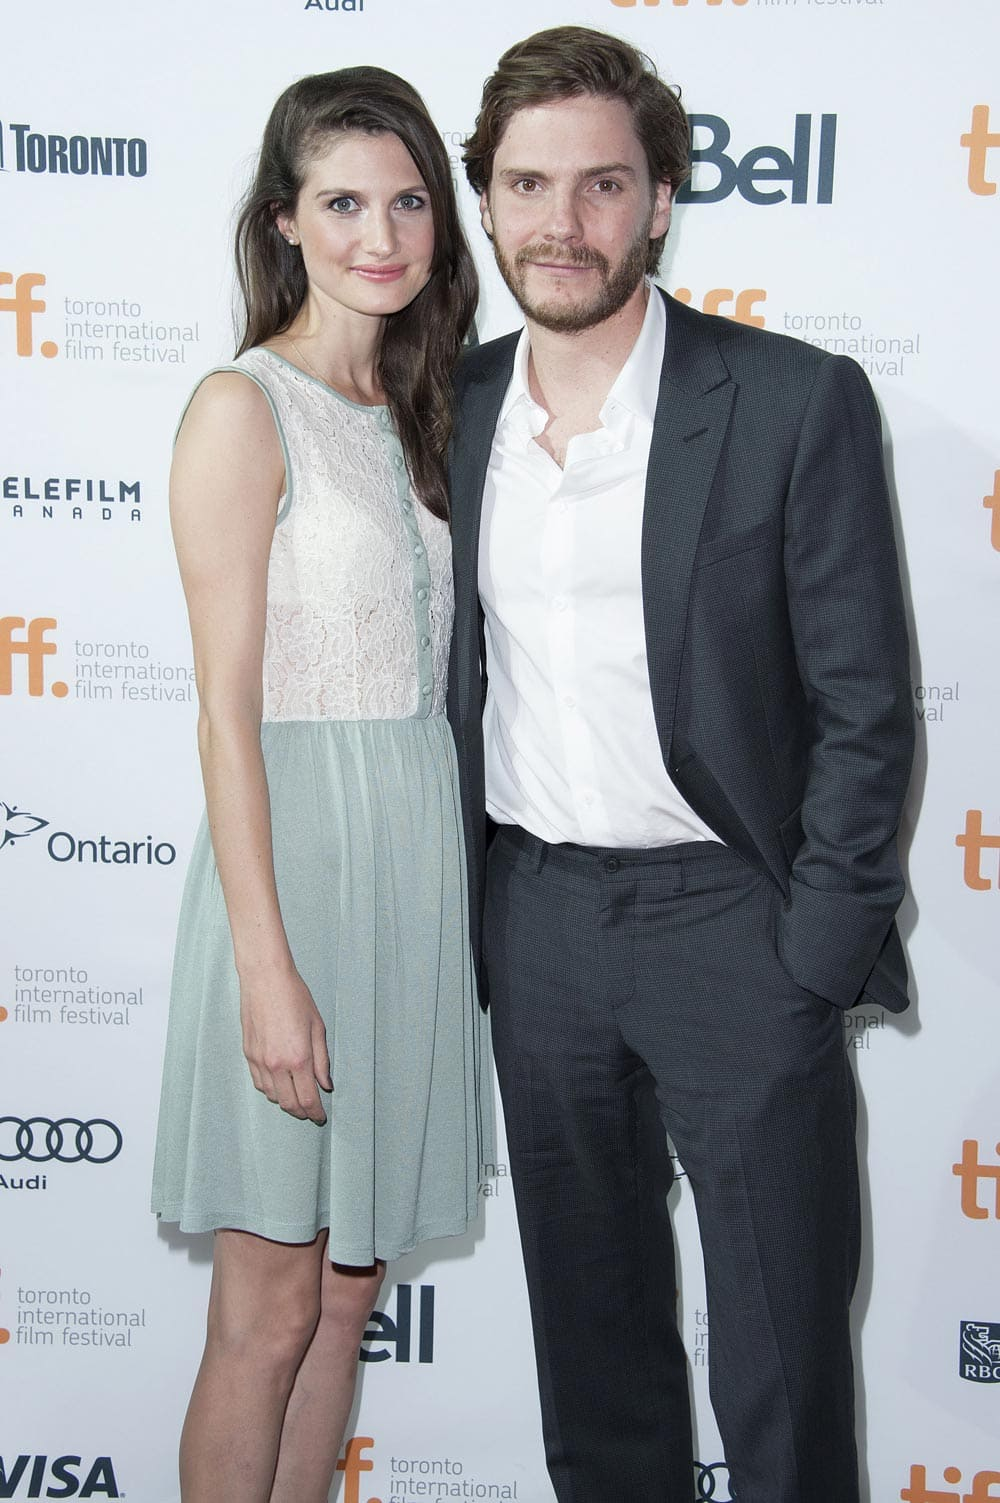 Actor Daniel Brühl and Felicitas Rombold arrive at the premiere of